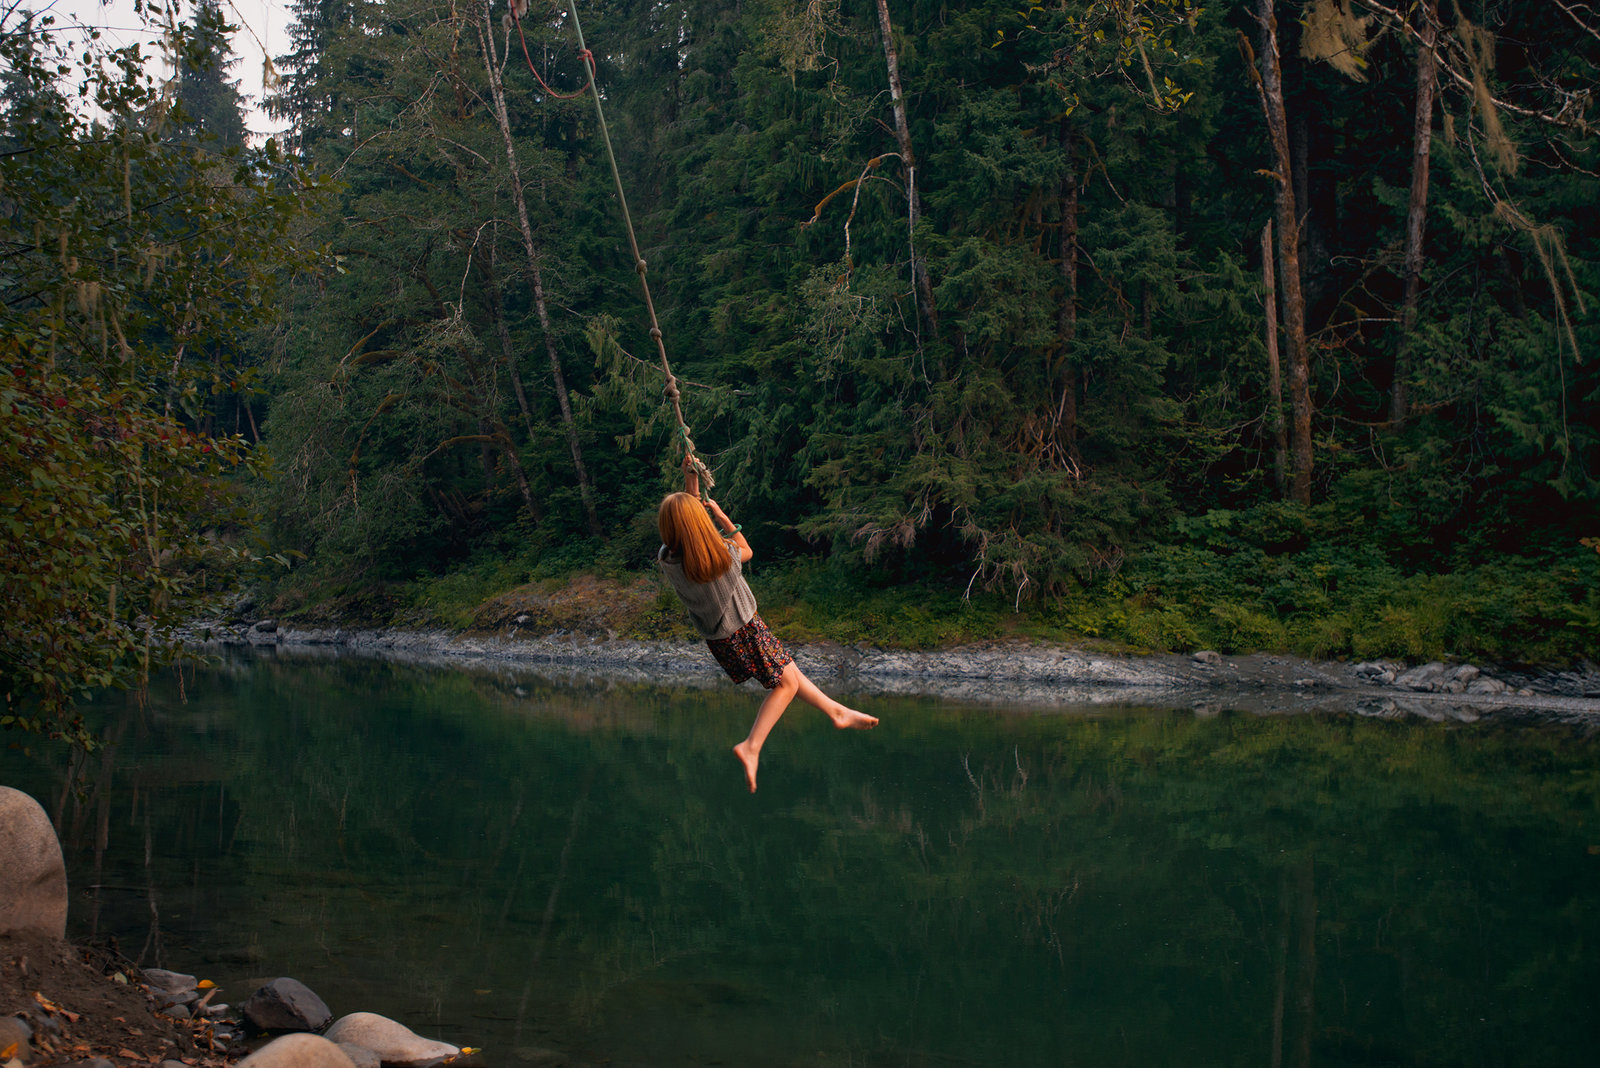 rope swing photo in washington state national forest